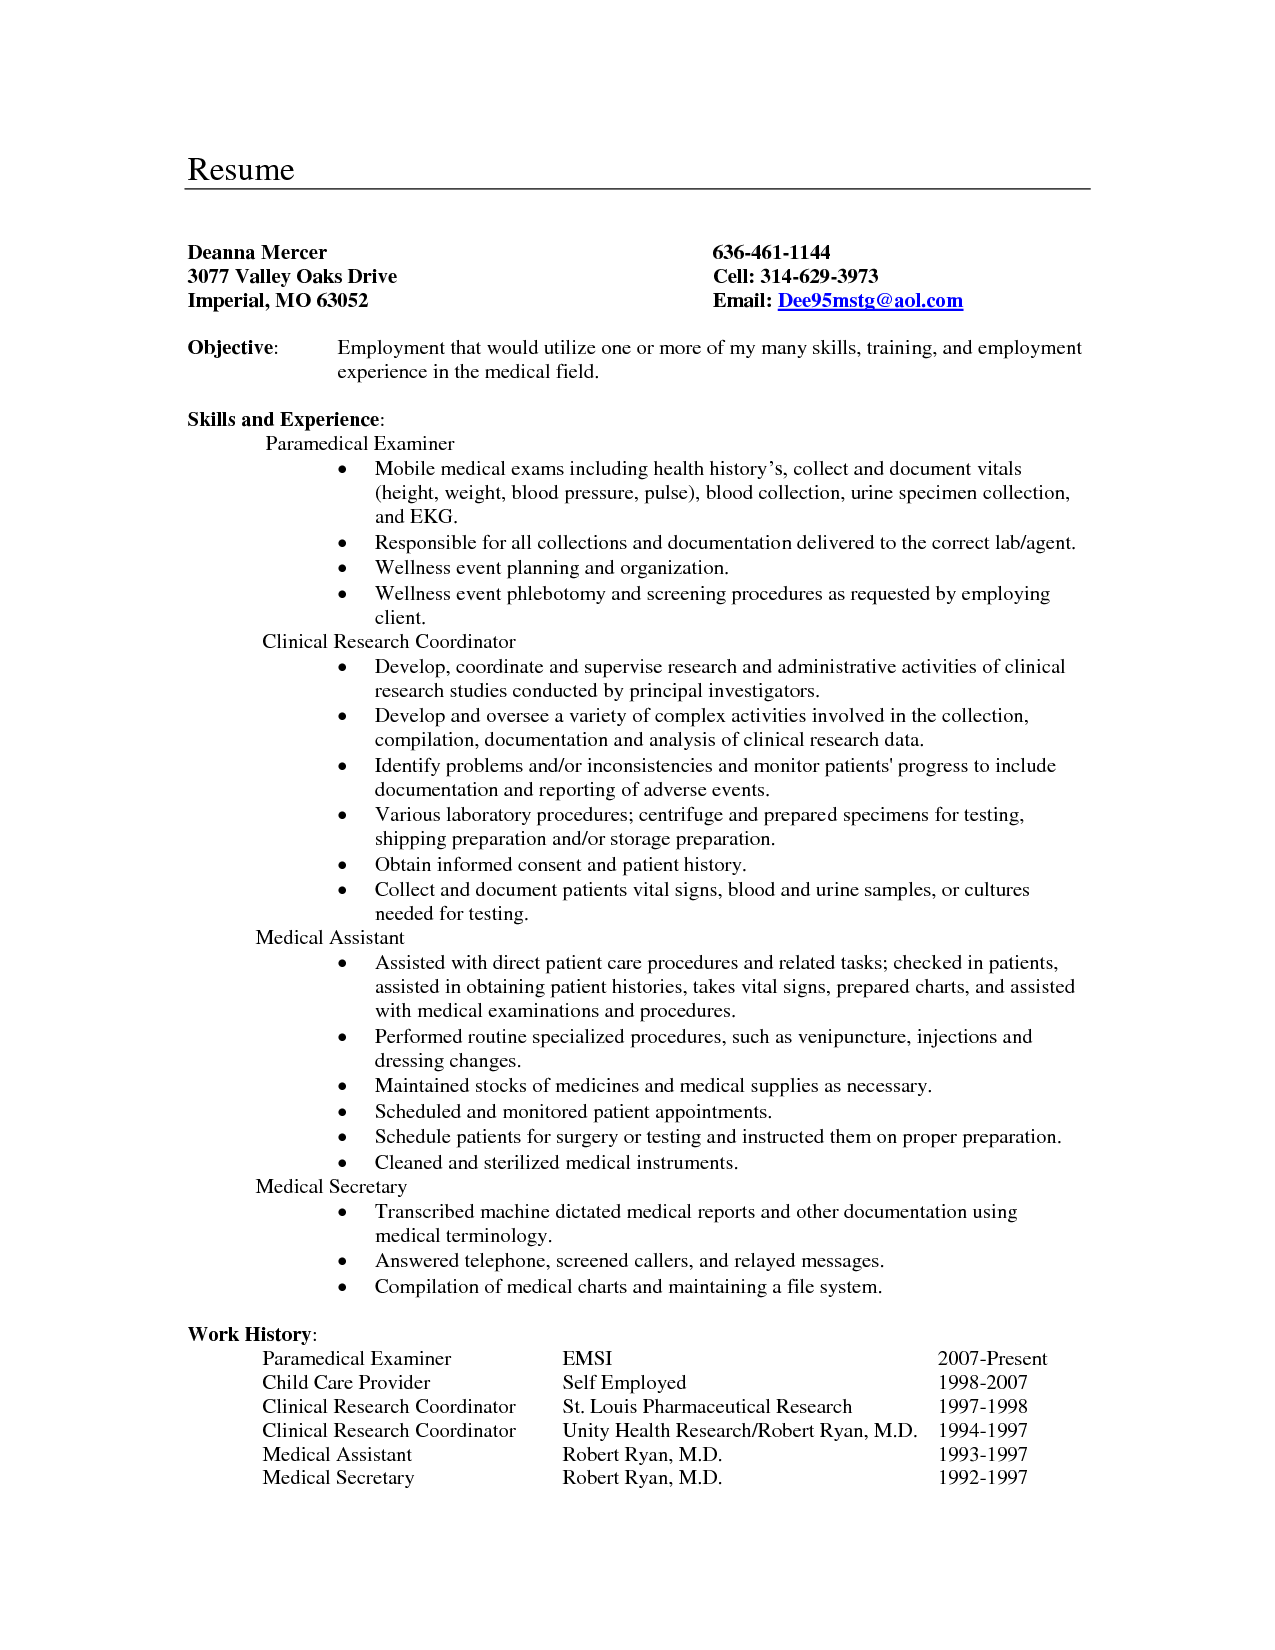 Medical Secretary Resume Objective Examples North Carolina